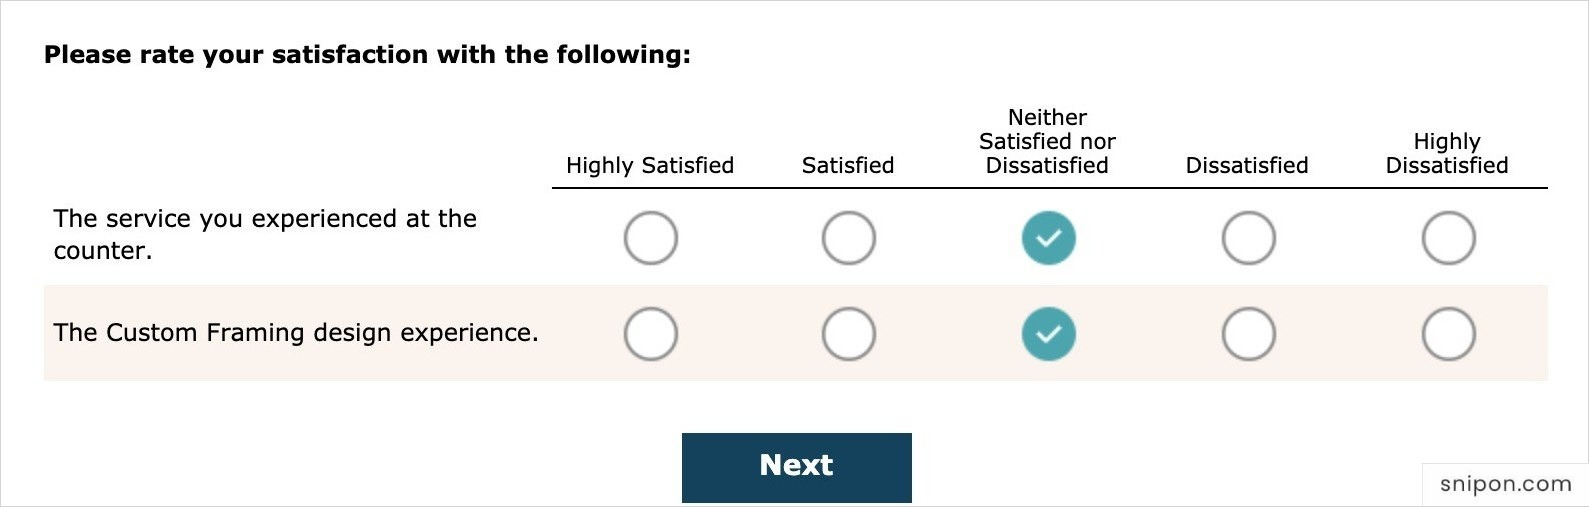 Rate Your Satisfaction With... - MyMichaelsCustomFraming